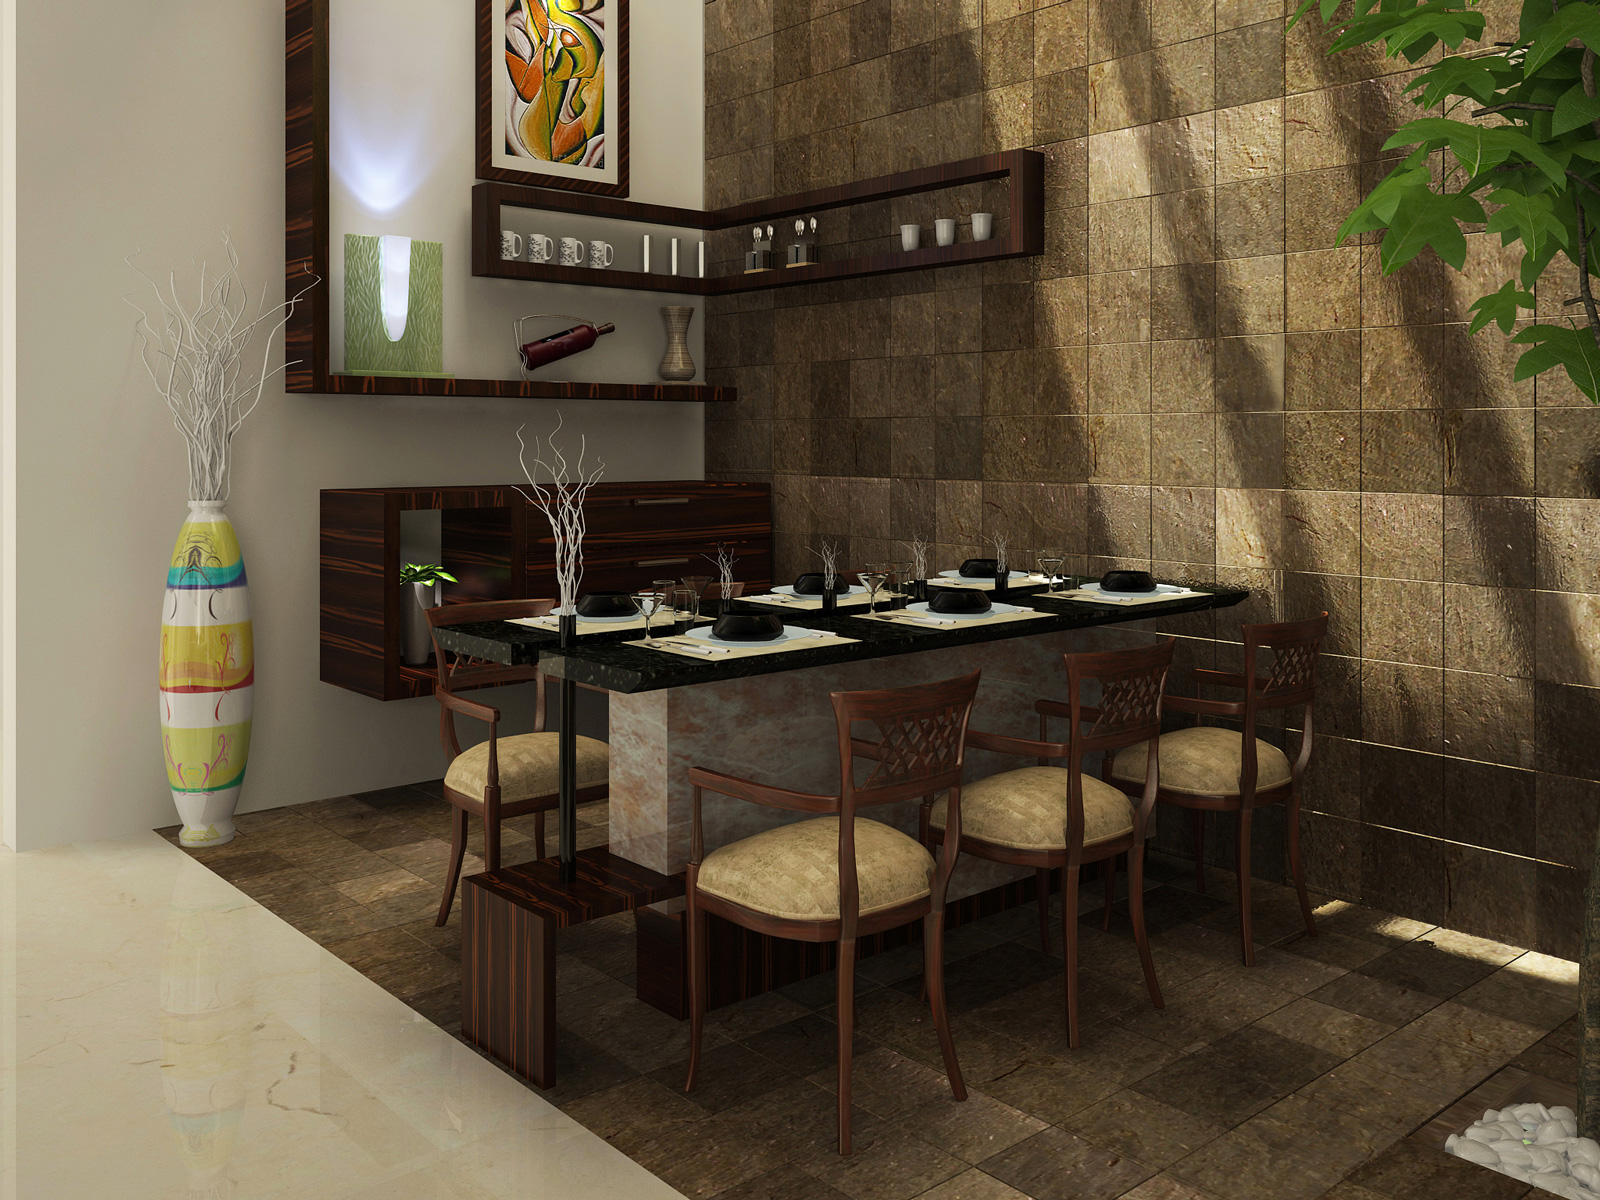 Kerala dining room design style photos home interior in india - Interiors of small dining room ...